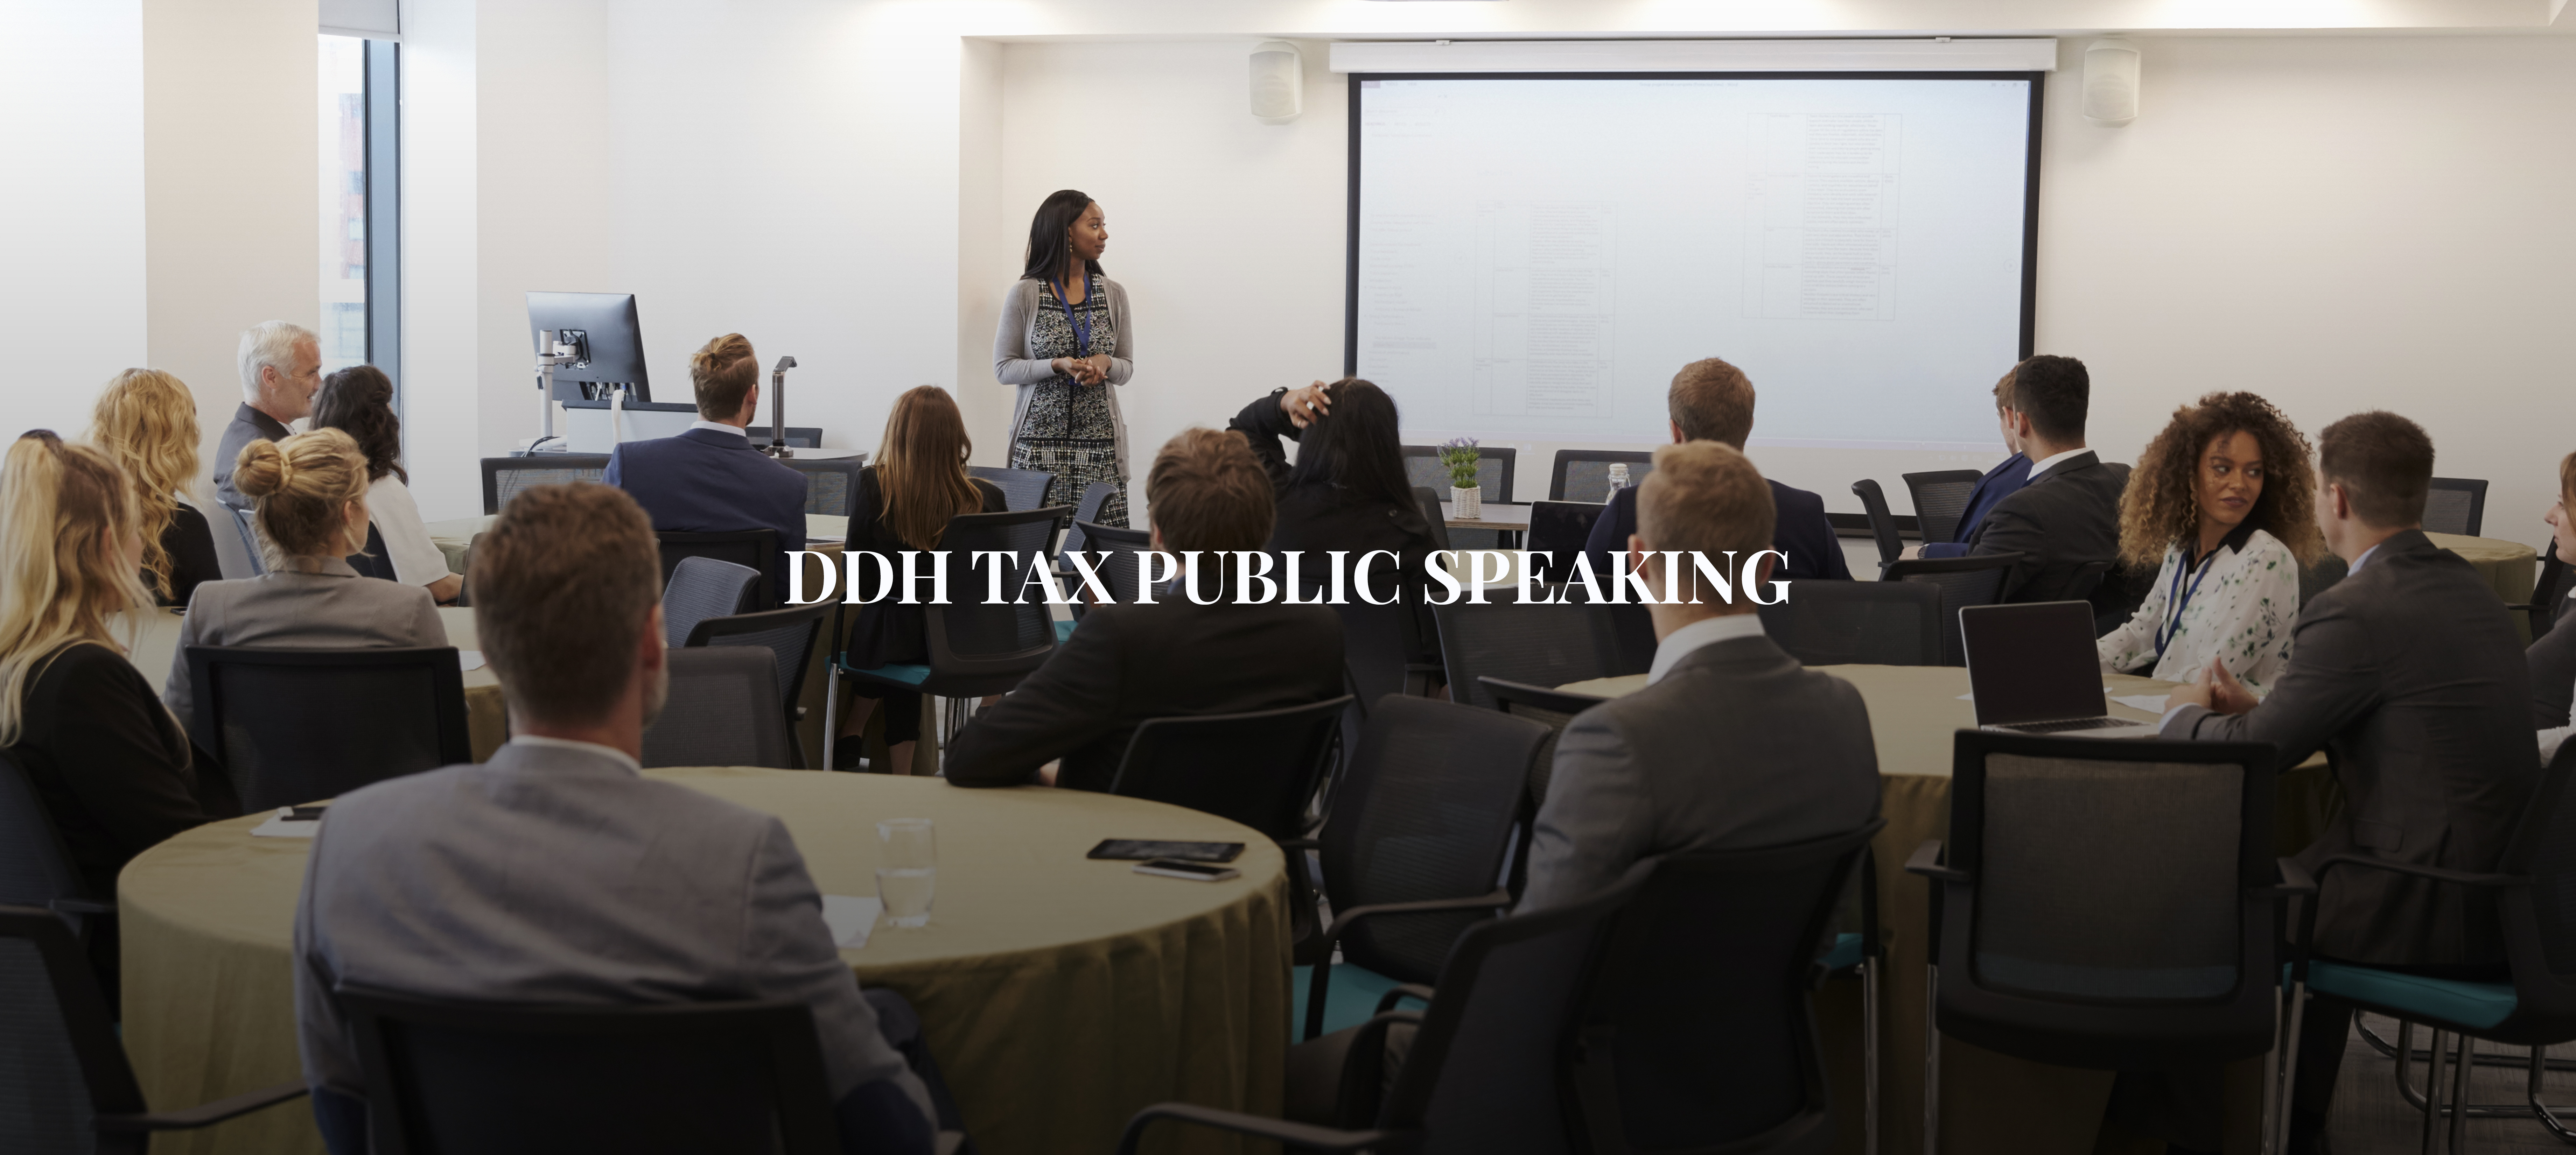 Public Speaking and Speakers Bios at DDH Tax